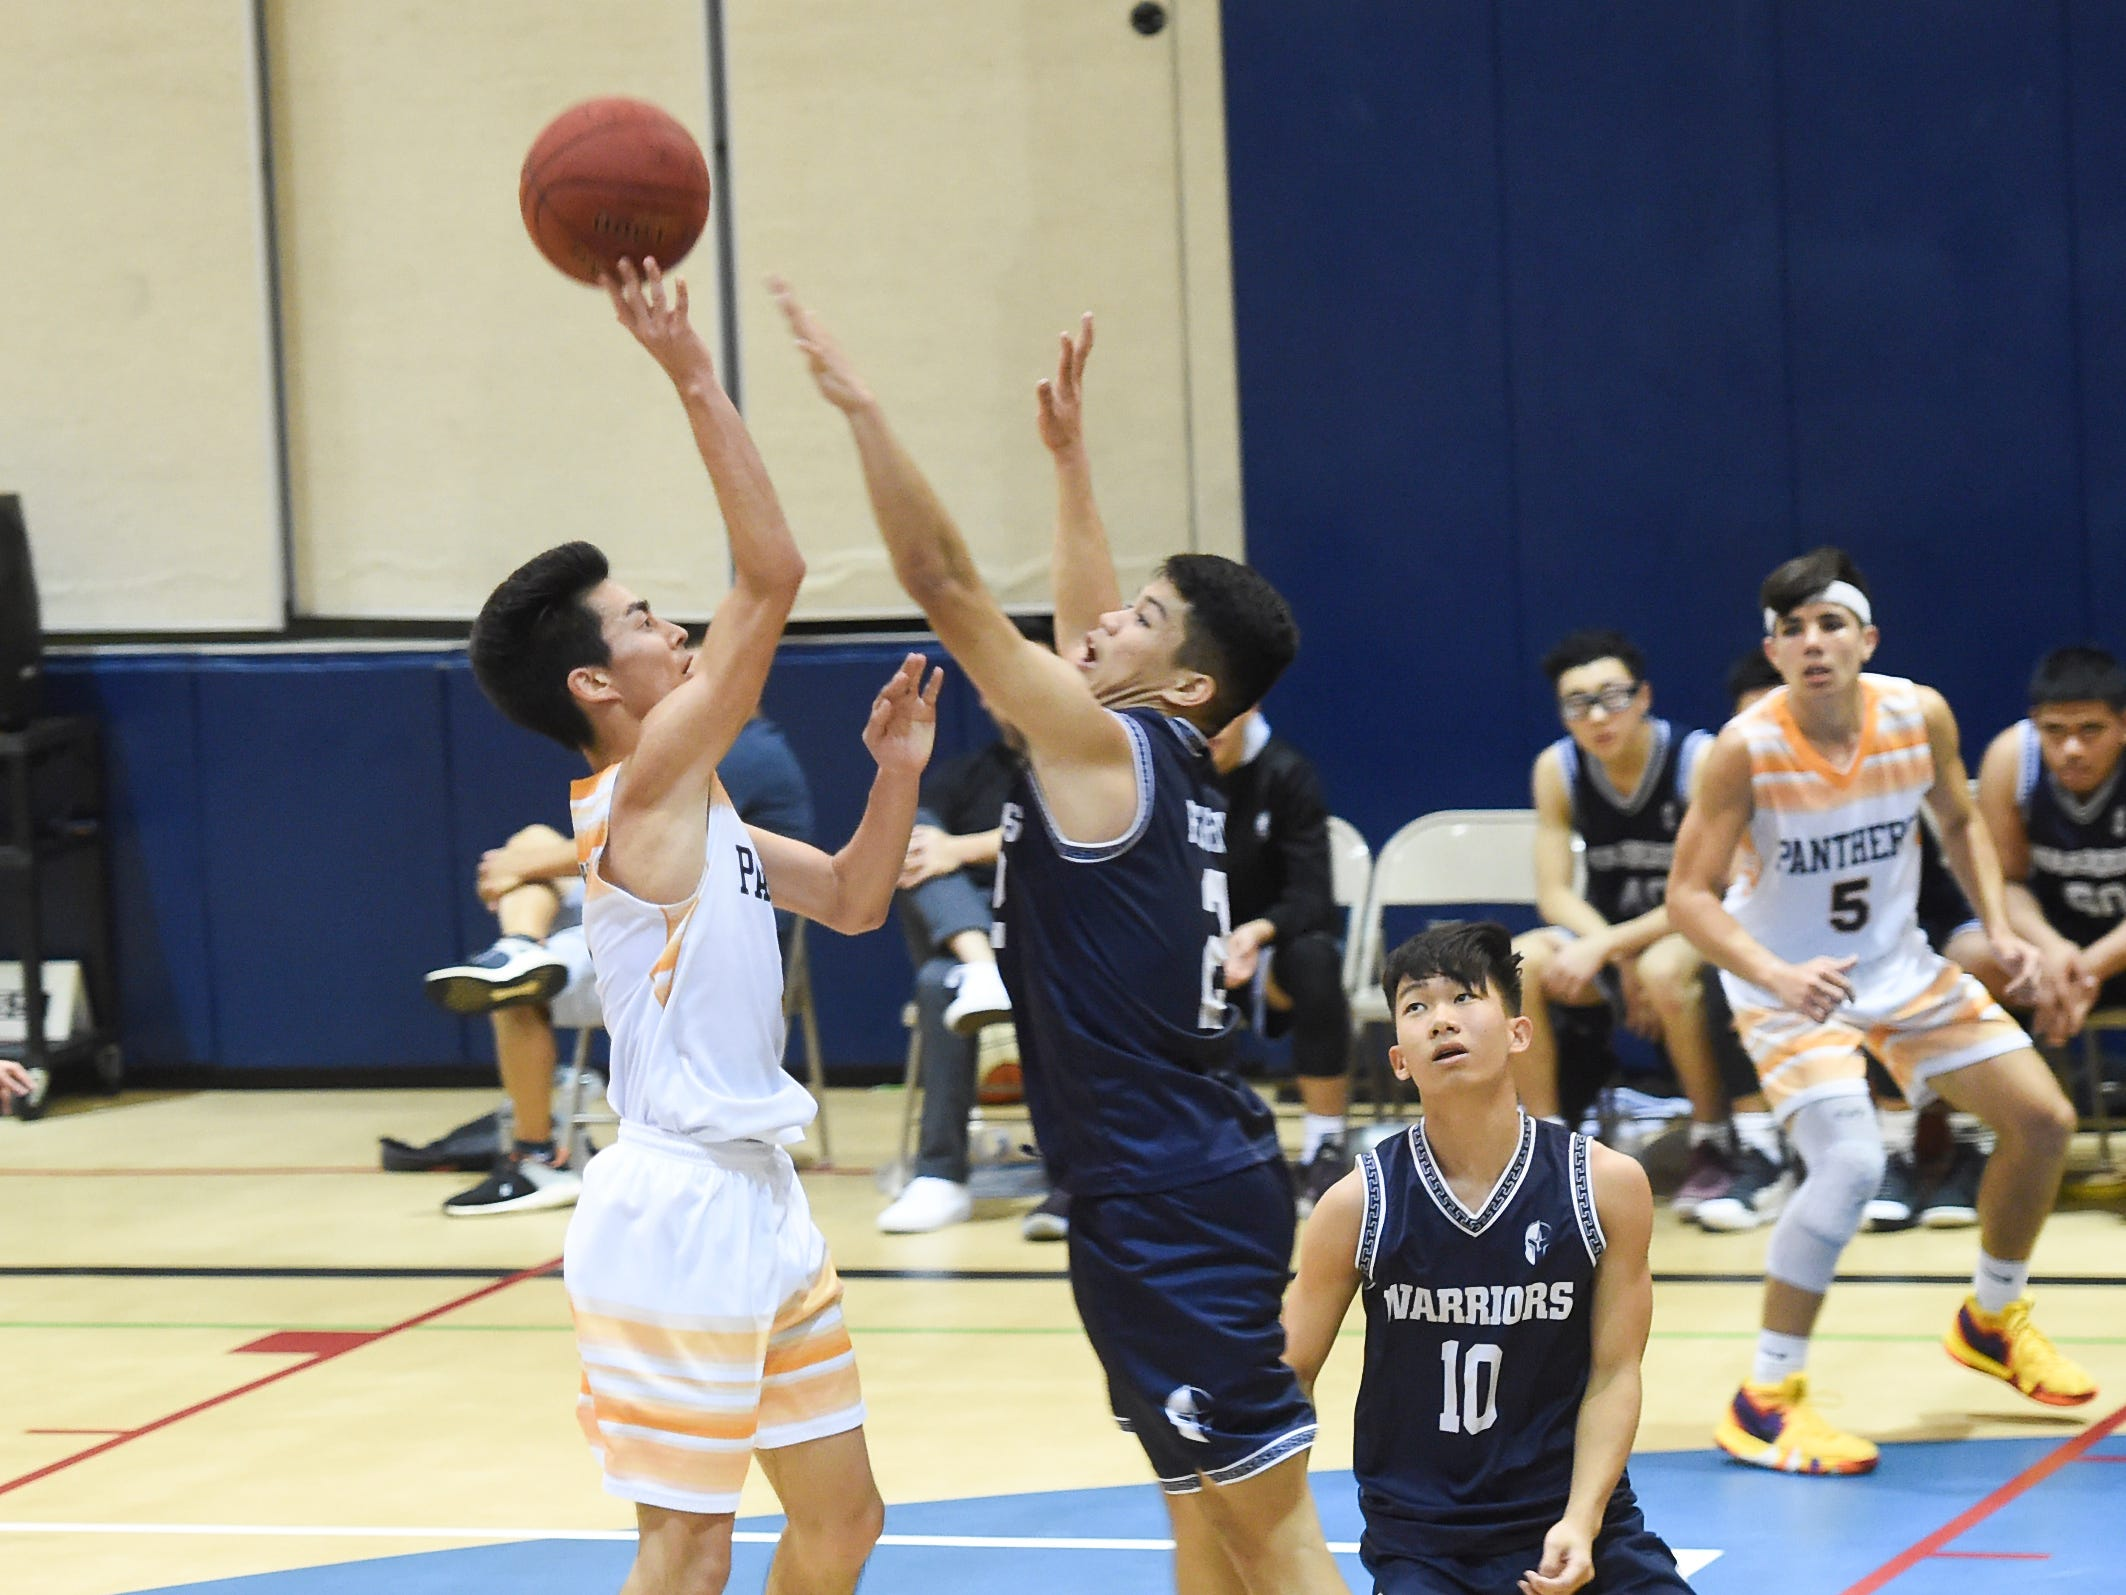 Guam High Panthers player Akira Martines drives to the basket against the St. Paul Warriors during their IIAAG Boys' Basketball game at the Guam High School Gym, Feb. 5, 2019.